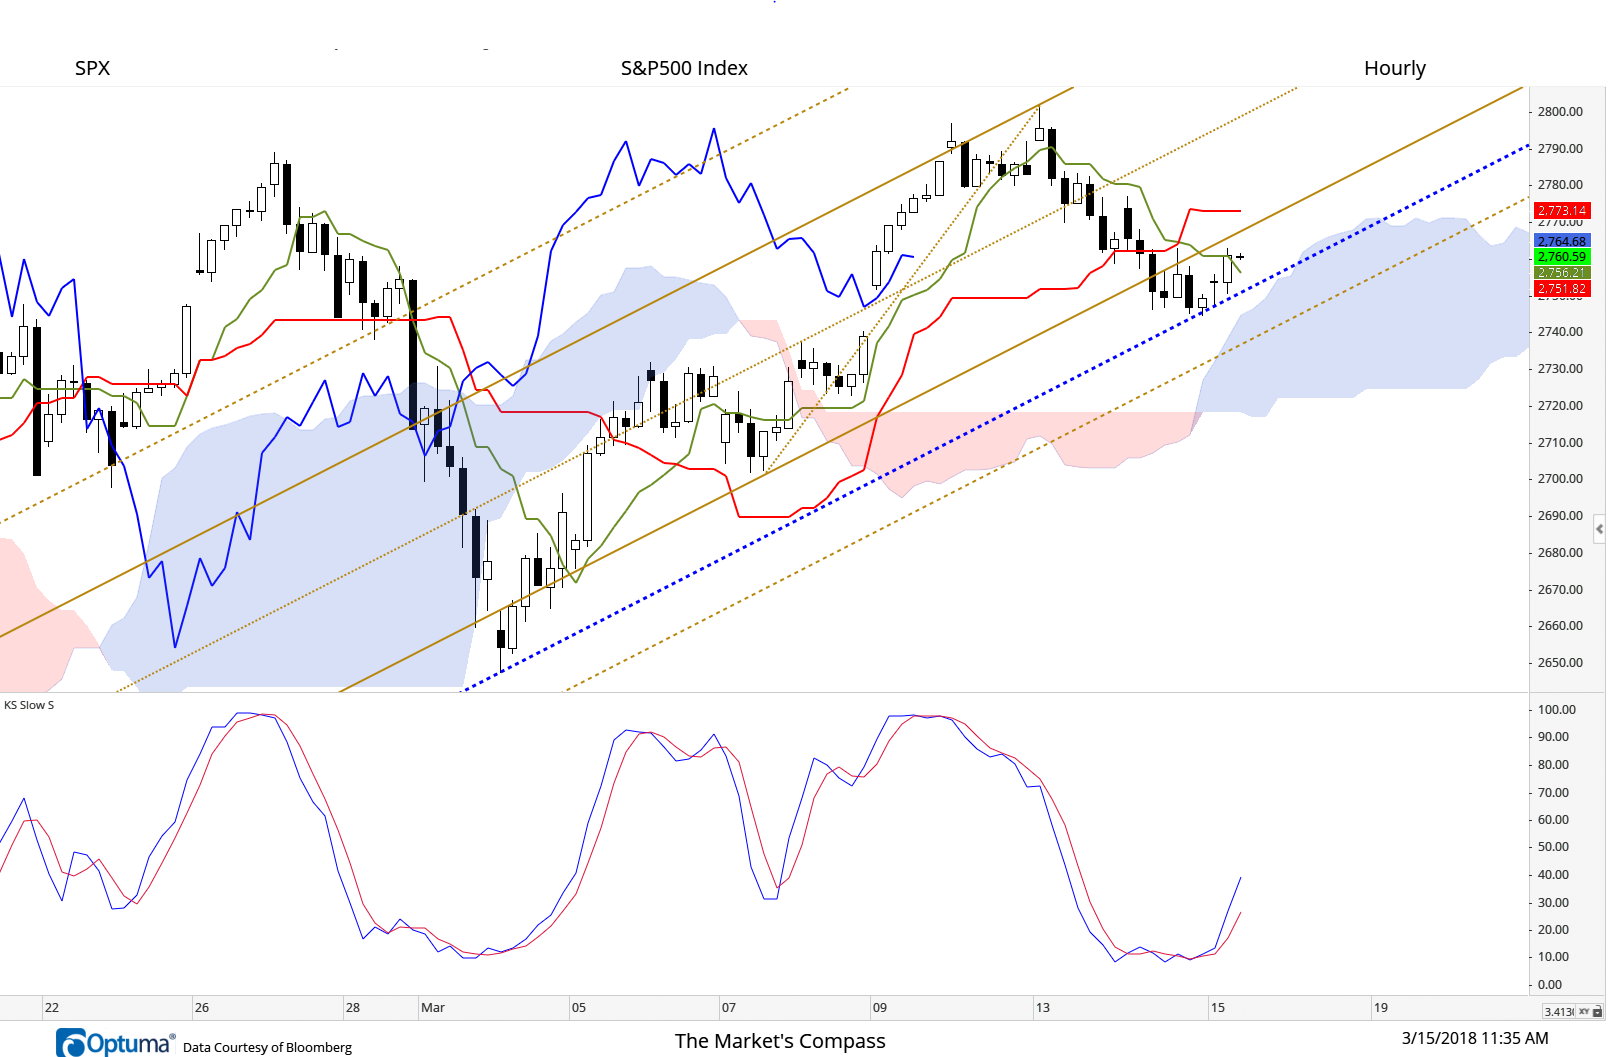 Price support at the Sliding Parallel of the Schiff Adjusted Pitchfork (blue dashed line) has come into play again as it did last week when the Kijun-Sen (Standard Line in red) tagged it and held. The Lagging Line (in solid Blue) has held support at the Median Line (light brown dashed line) just recently and back in late February. These technical features give us confidence that we have pegged the correct frequency on the price grid on the hourly chart of the SPX Index. We are waiting patiently to see if the ground above the Lower Parallel of the Pitchfork (solid brown line) and the Kijun-Sen can be re-taken.